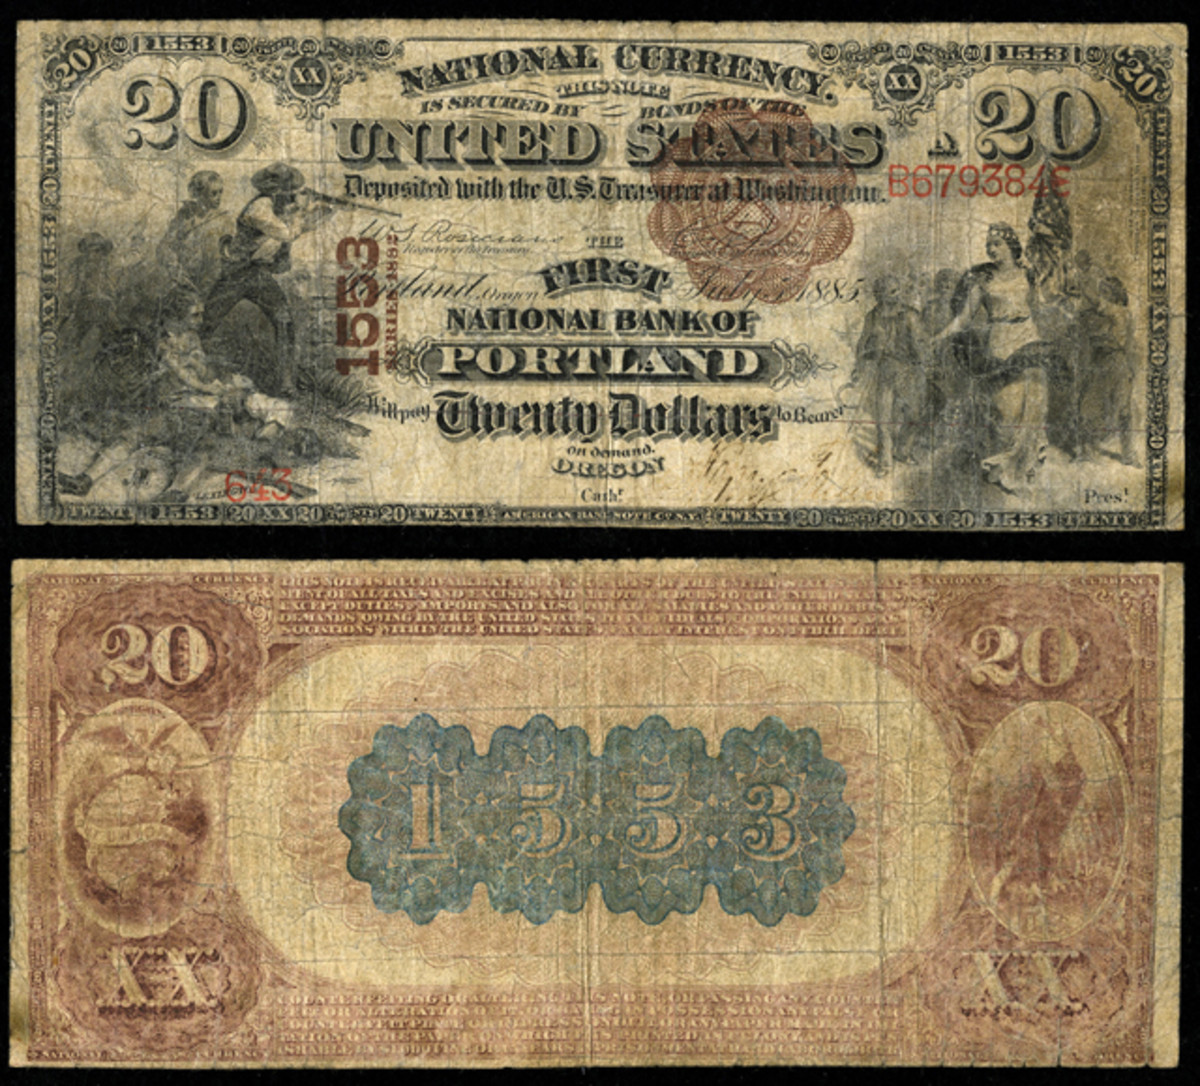 A $20 Brown Back on The First National Bank of Portland, Ore., of the type stolen in the Union Pacific heist on June 2, 1899 near Wilcox, Wyo. Courtesy Heritage Auctions.